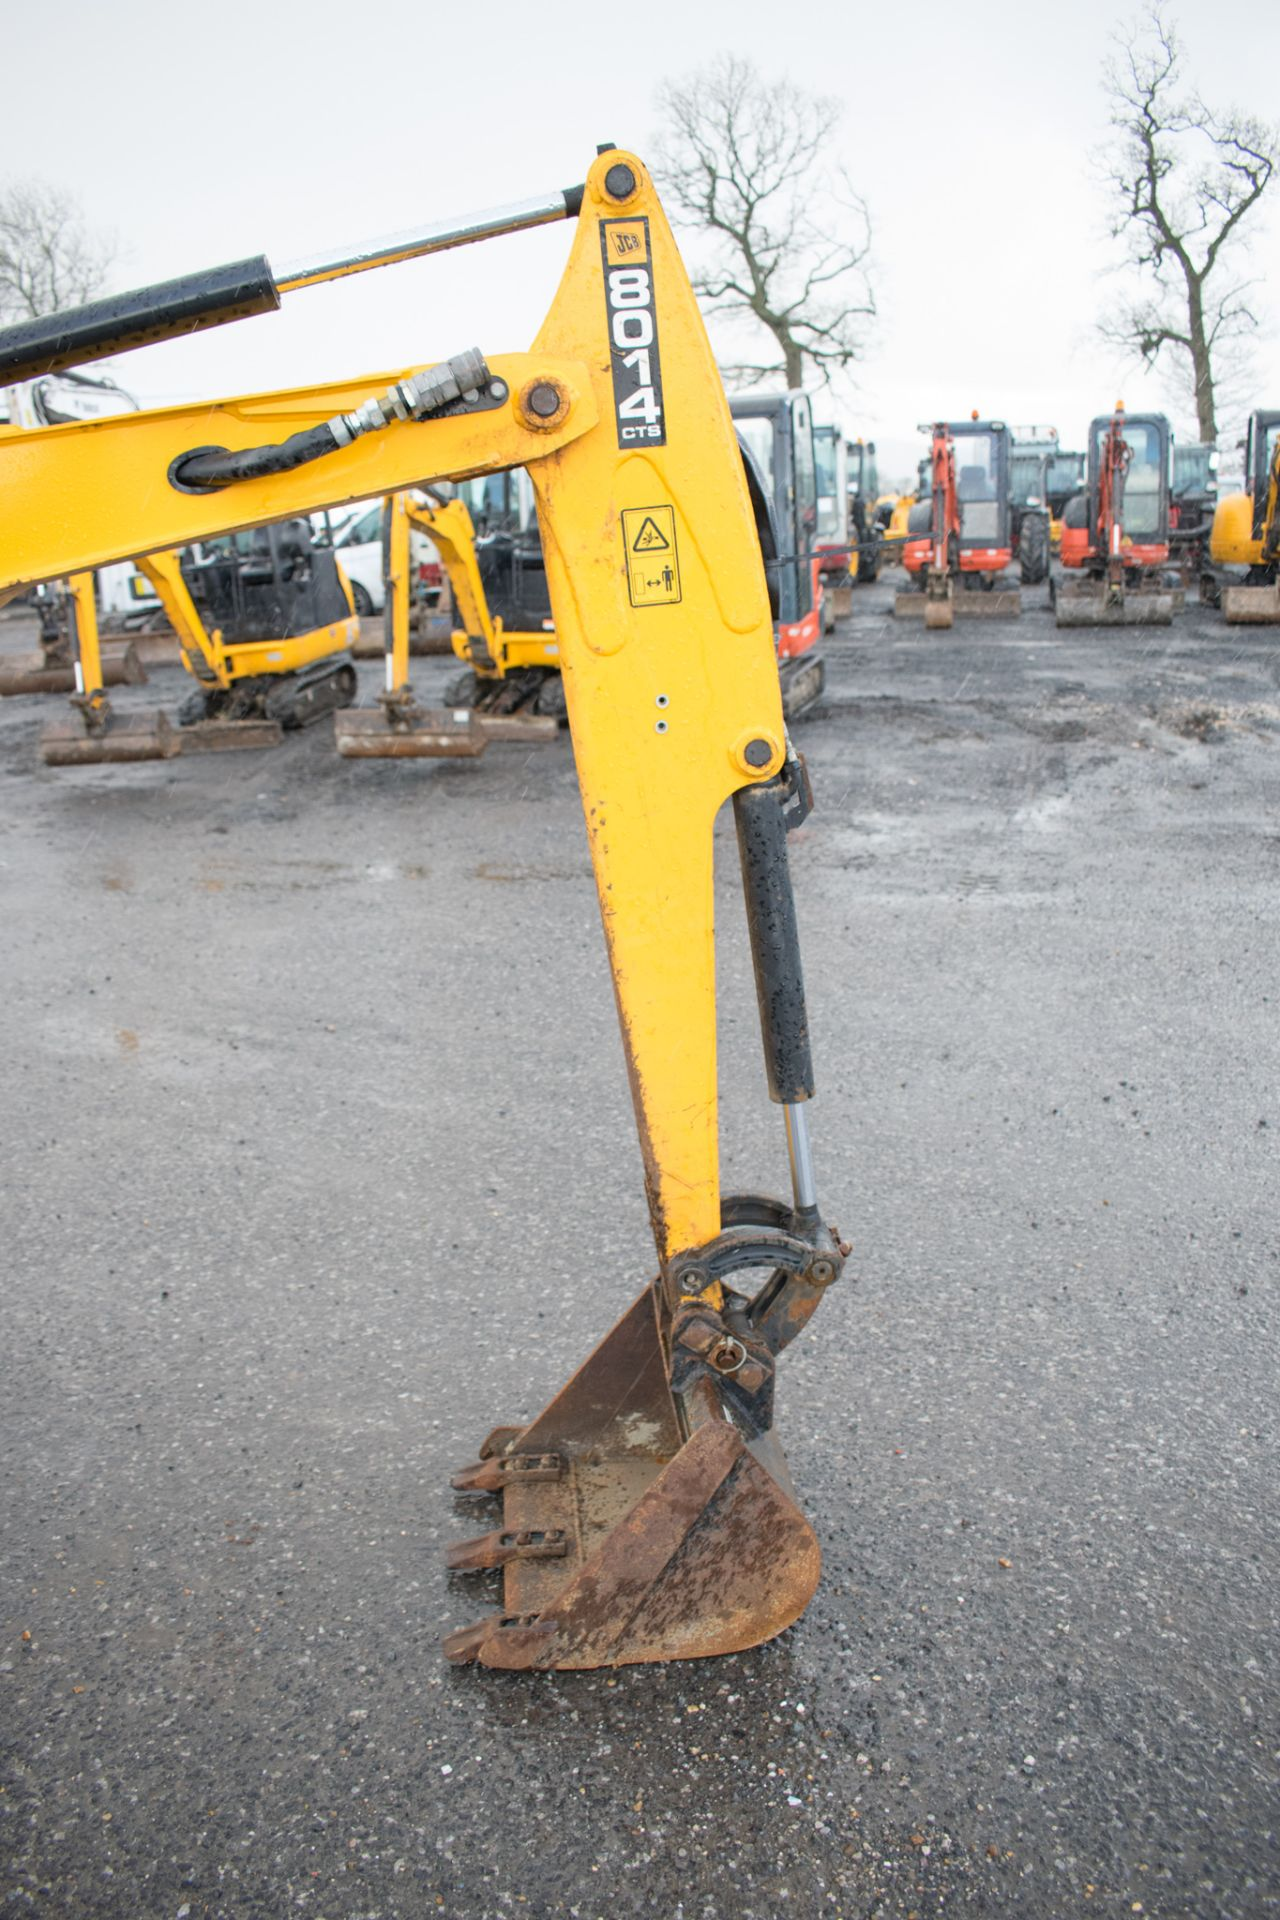 Lot 28 - JCB 8014 1.5 tonne rubber tracked mini excavator Year: 2016 S/N: 75425 Recorded hours: 561 LH20007